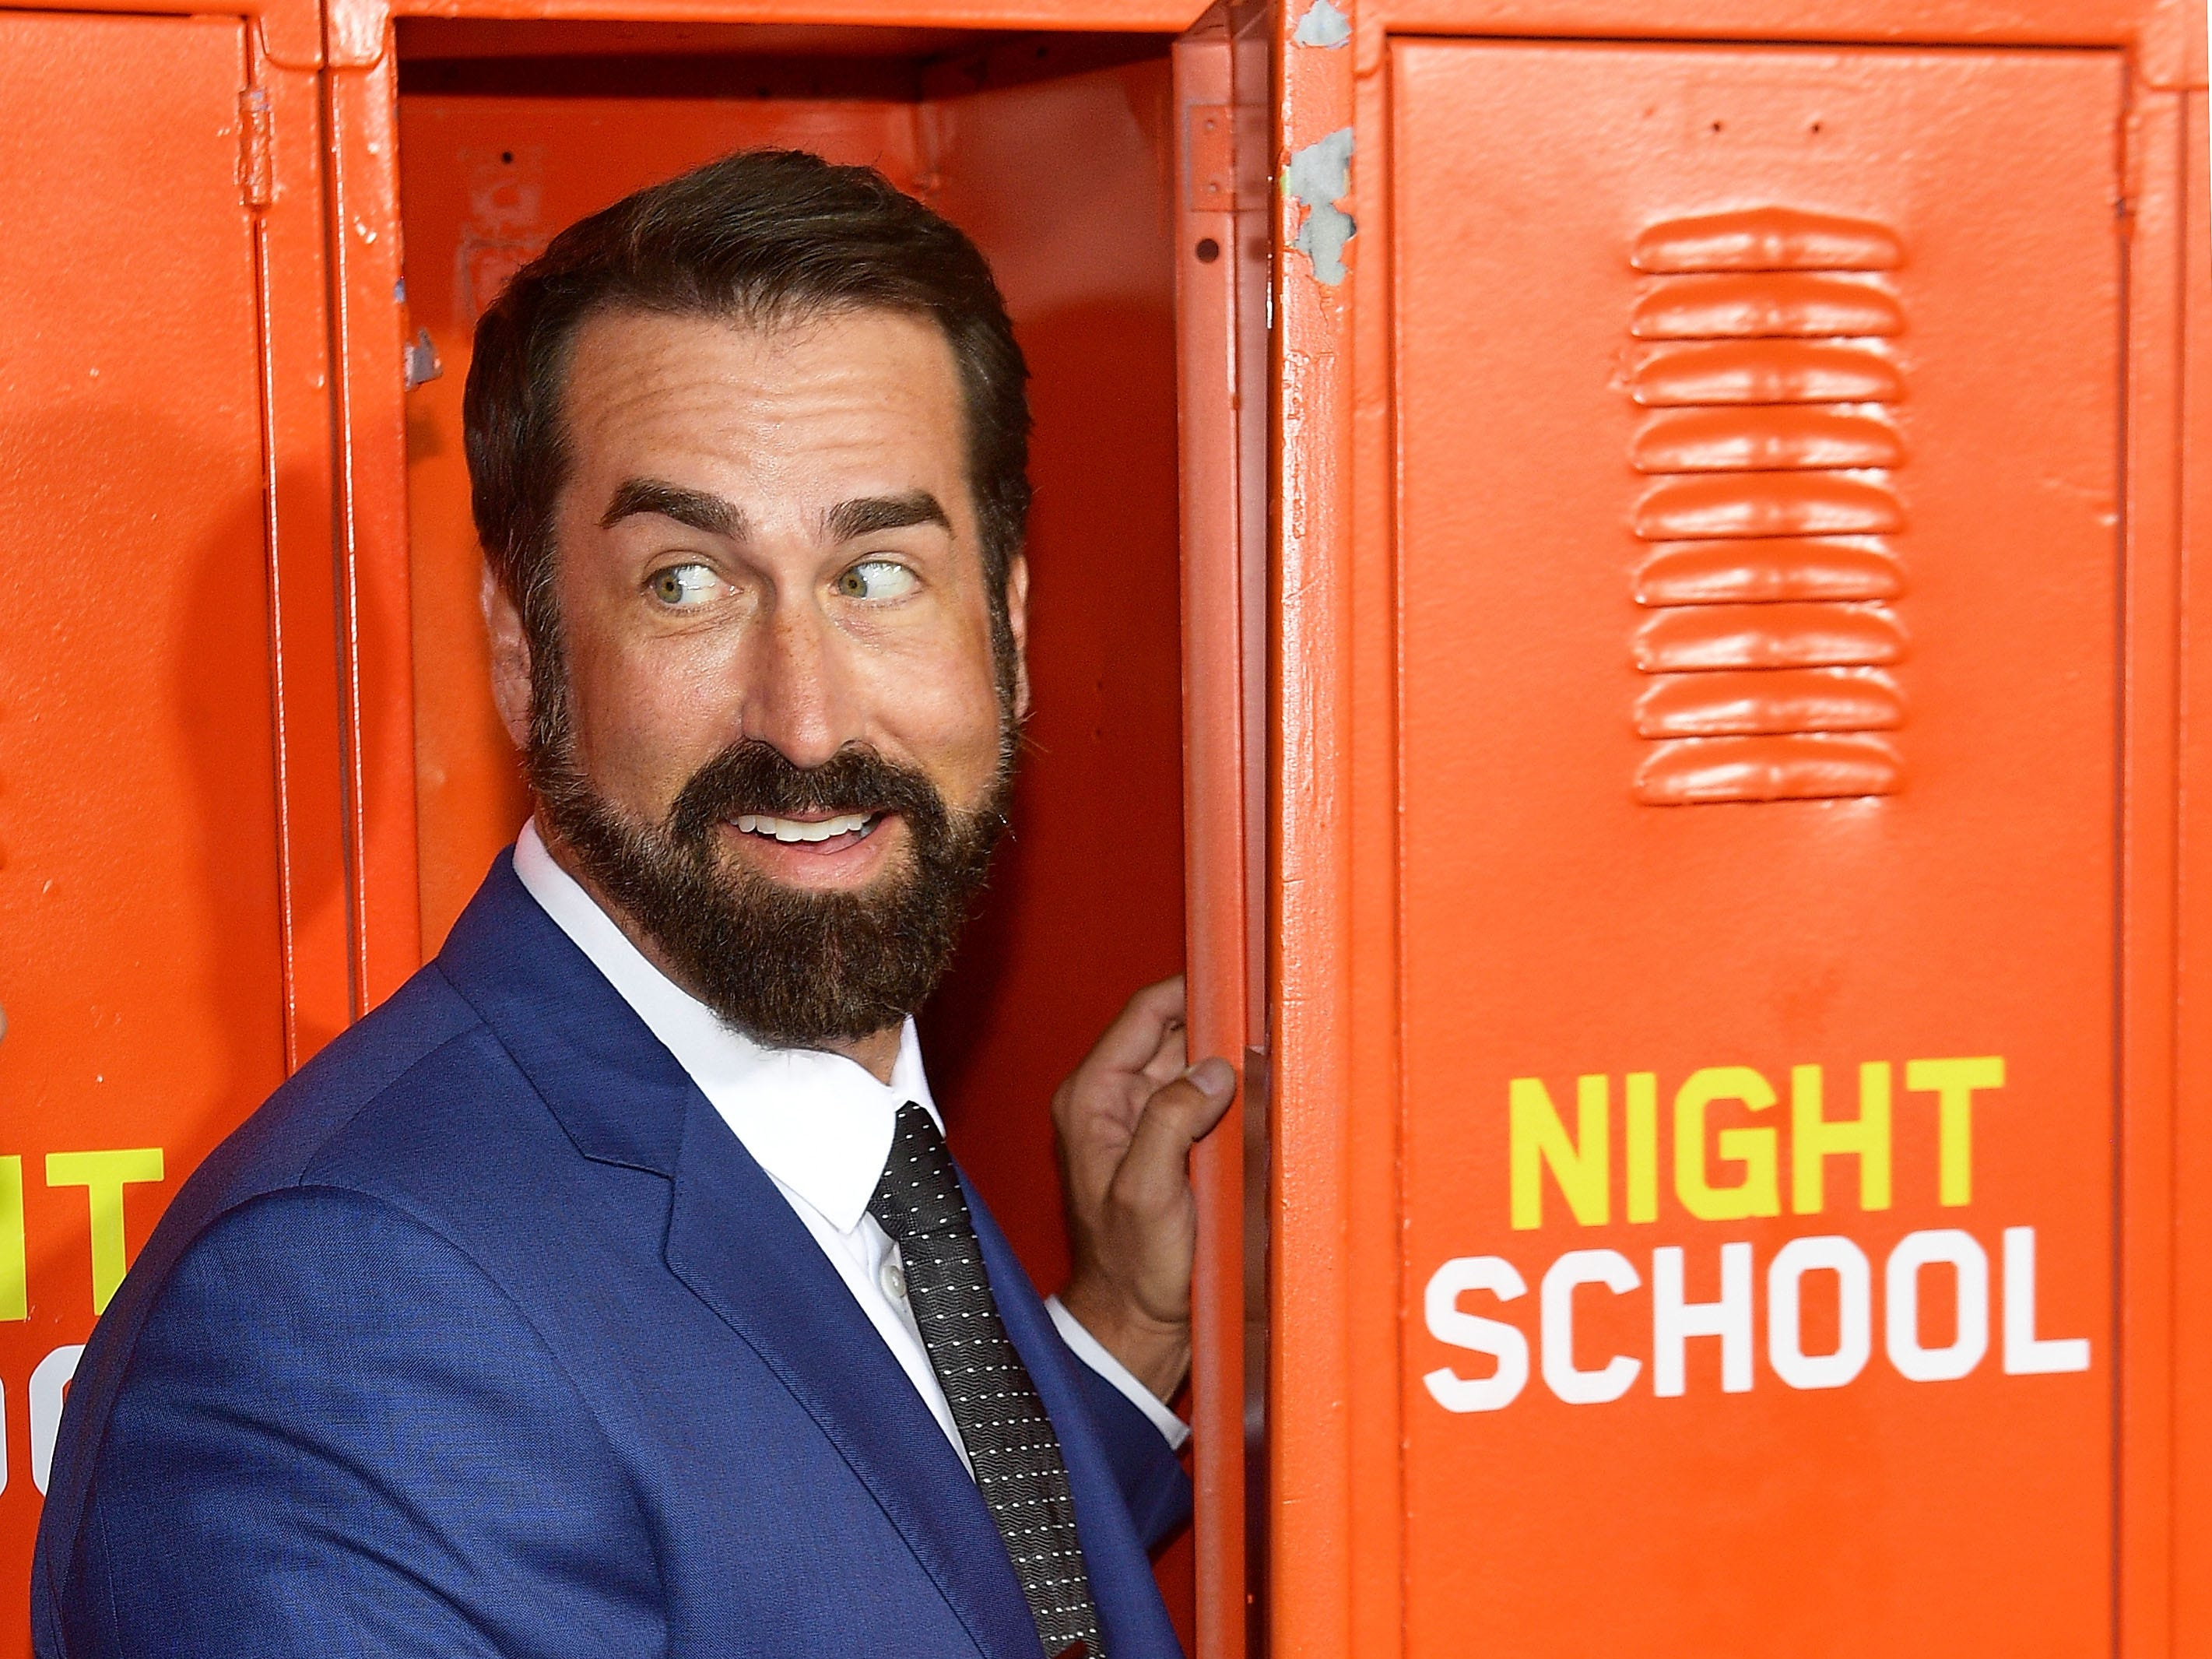 "LOS ANGELES, CA - SEPTEMBER 24:   Rob Riggle attends the premiere of Universal Pictures' ""Night School"" on September 24, 2018 in Los Angeles, California.  (Photo by Matt Winkelmeyer/Getty Images) ORG XMIT: 775229472 ORIG FILE ID: 1039728754"